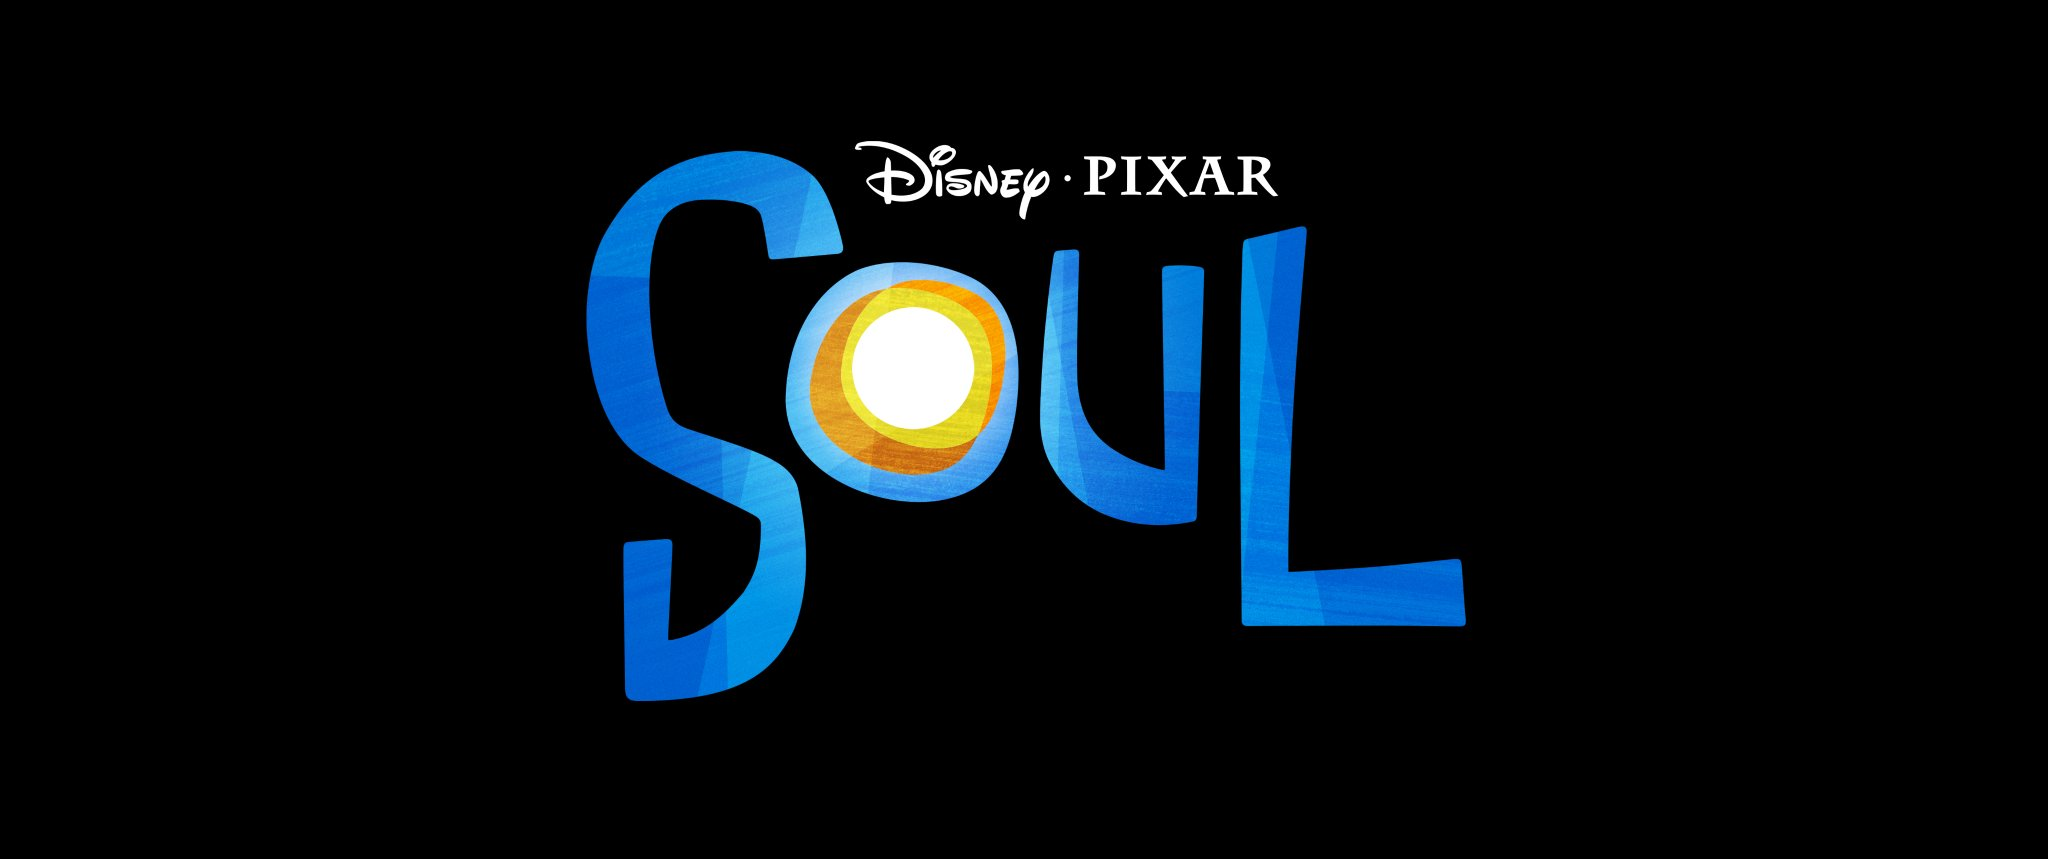 Pixar announces new original film, Soul